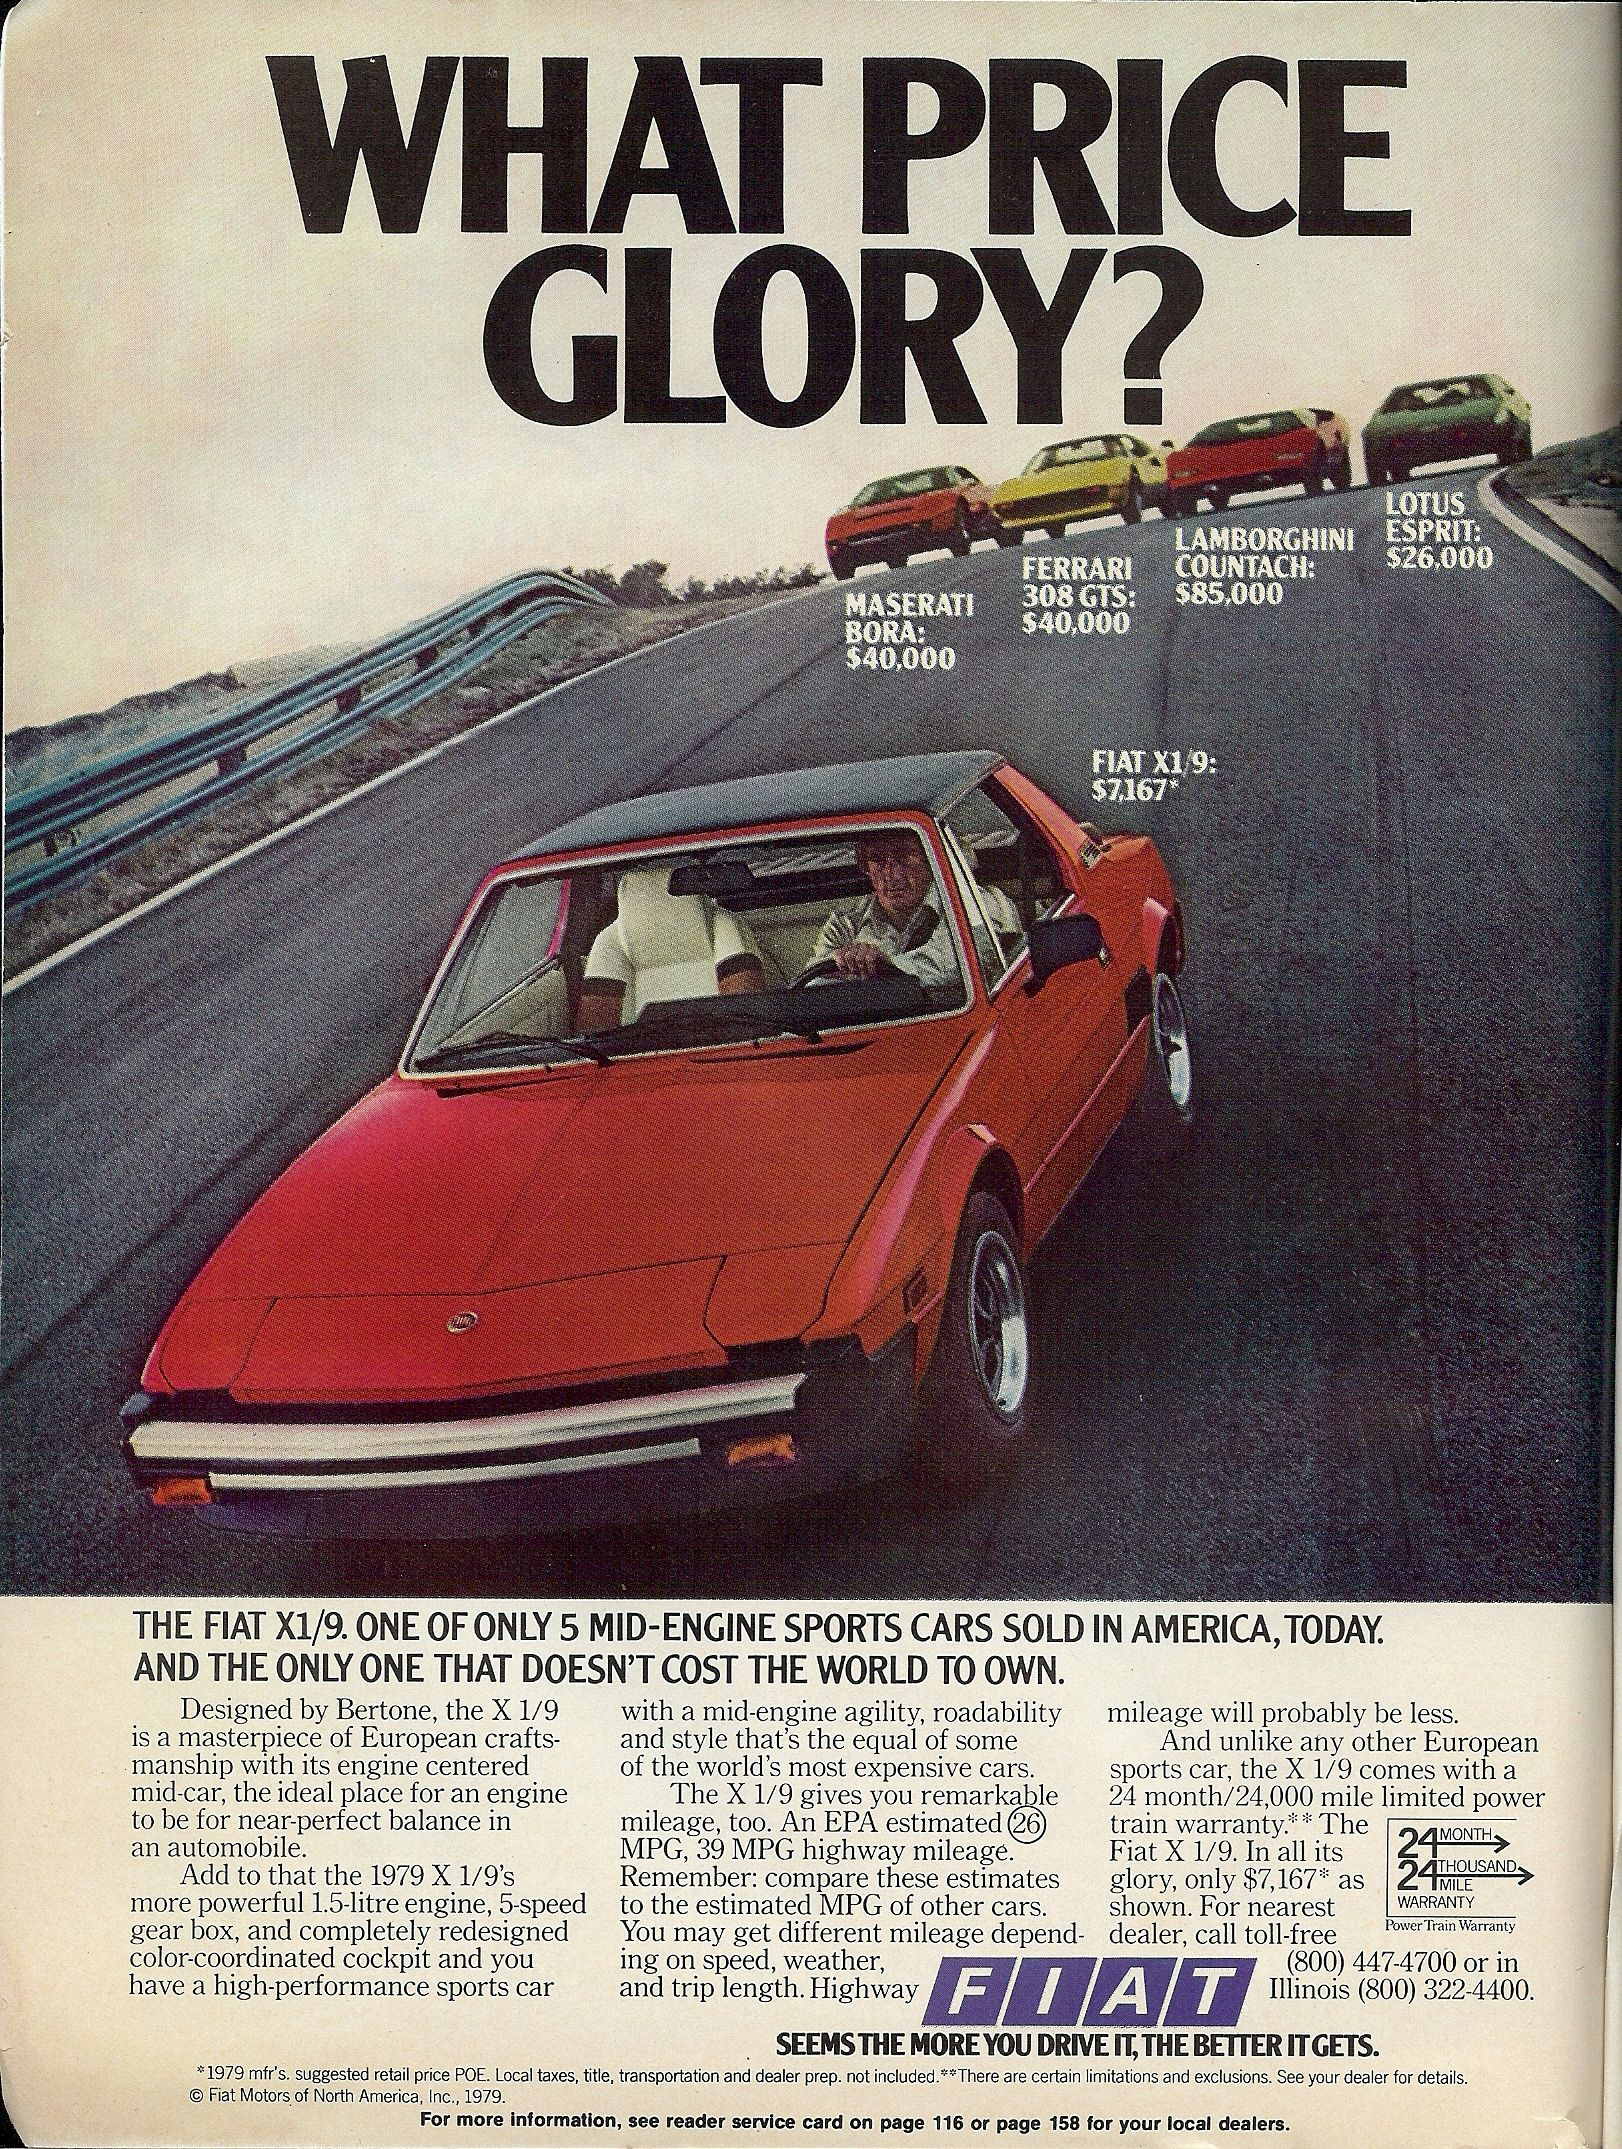 Pin By Midwest Bayless Italian Auto On X19 Fiat X19 Vintage Cars